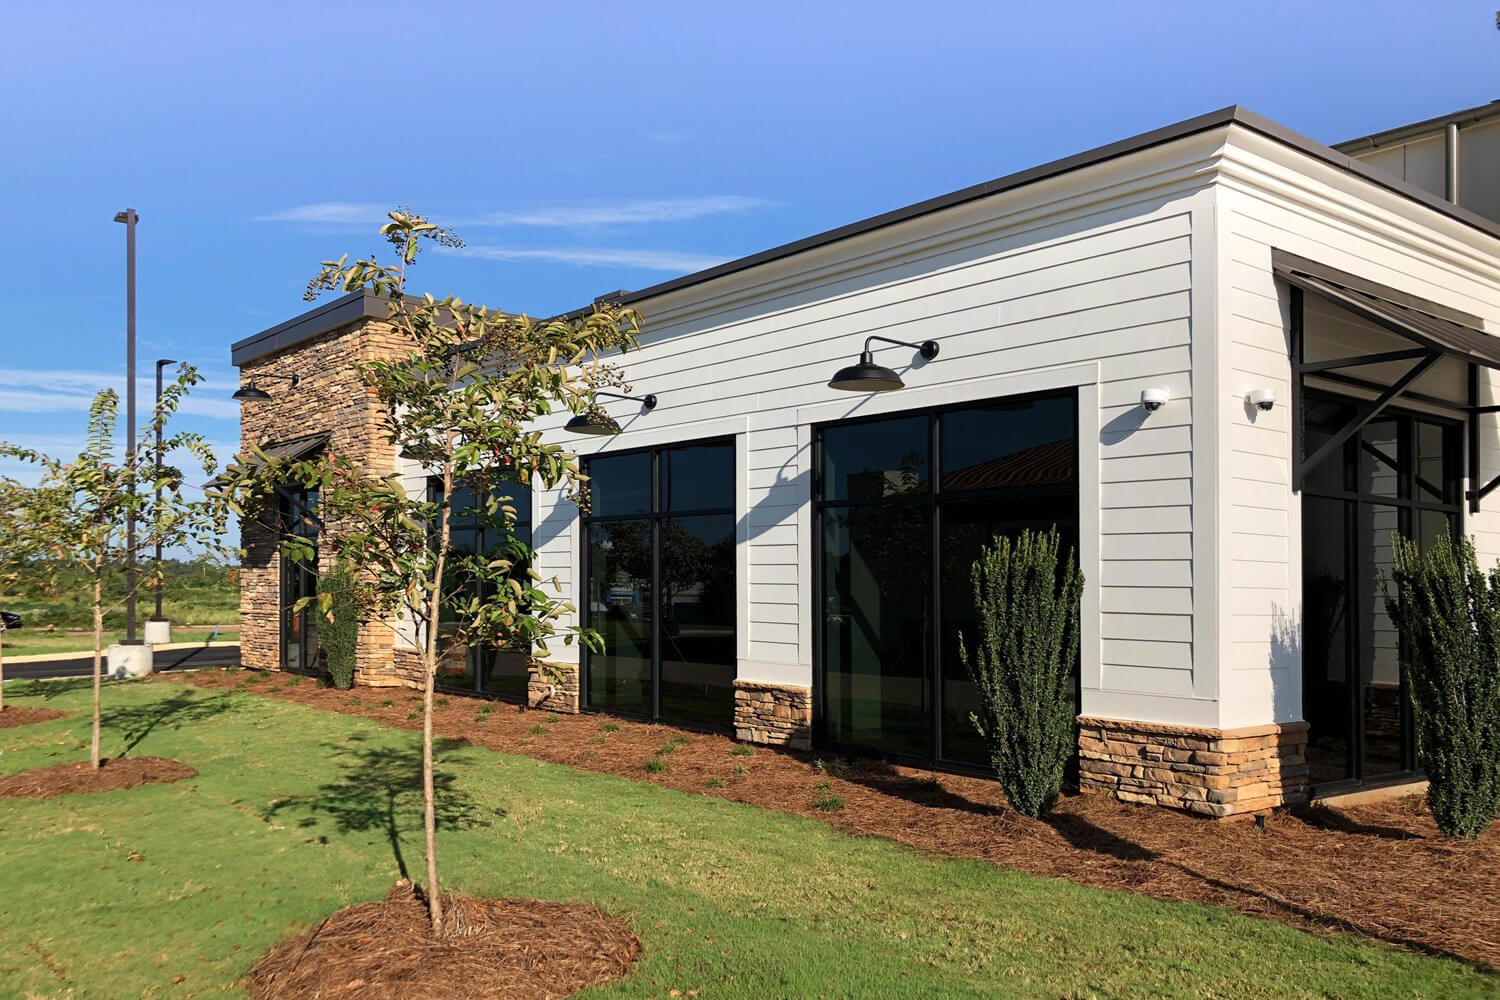 Guardian Credit Union - Side View - Designed by Foshee Architecture